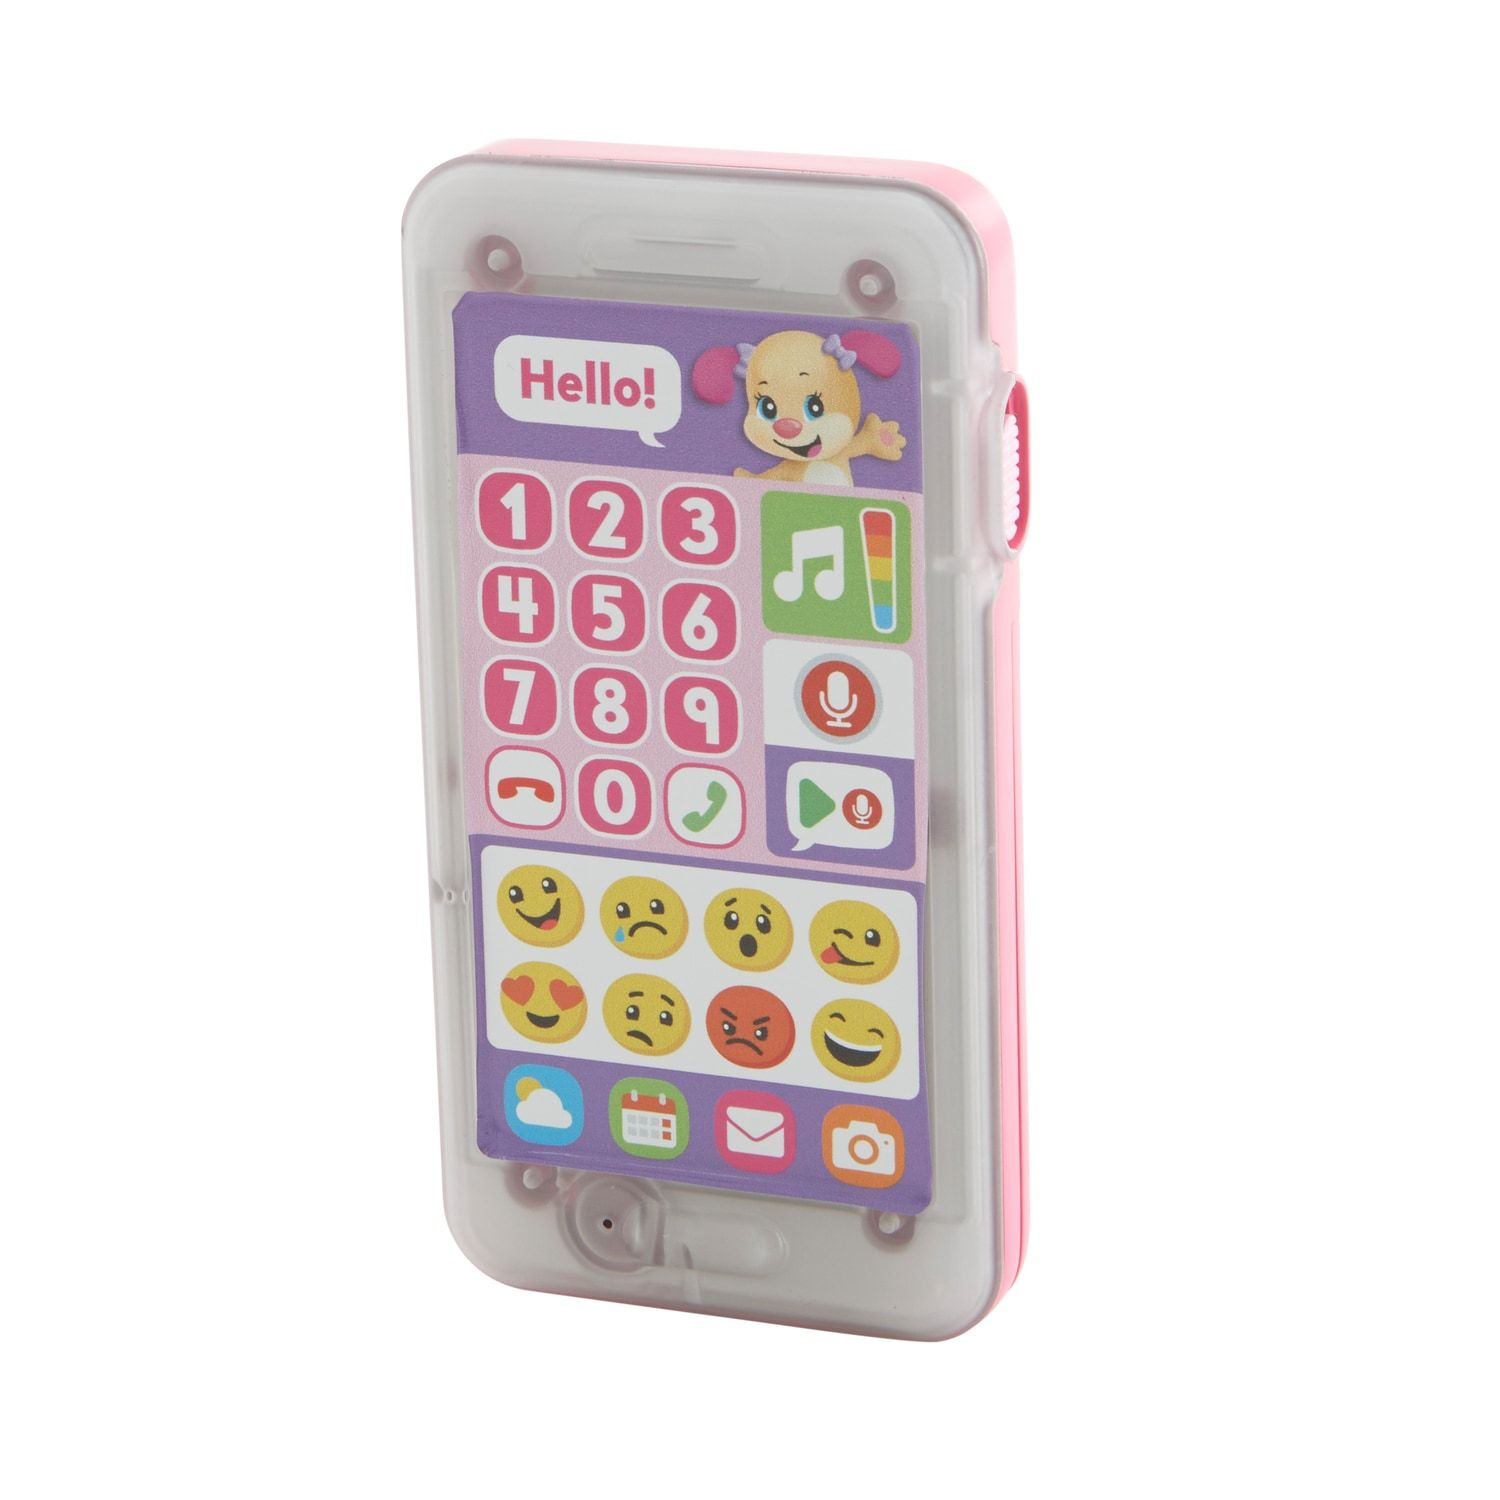 Fisherprice laugh learn leave a message smart phone